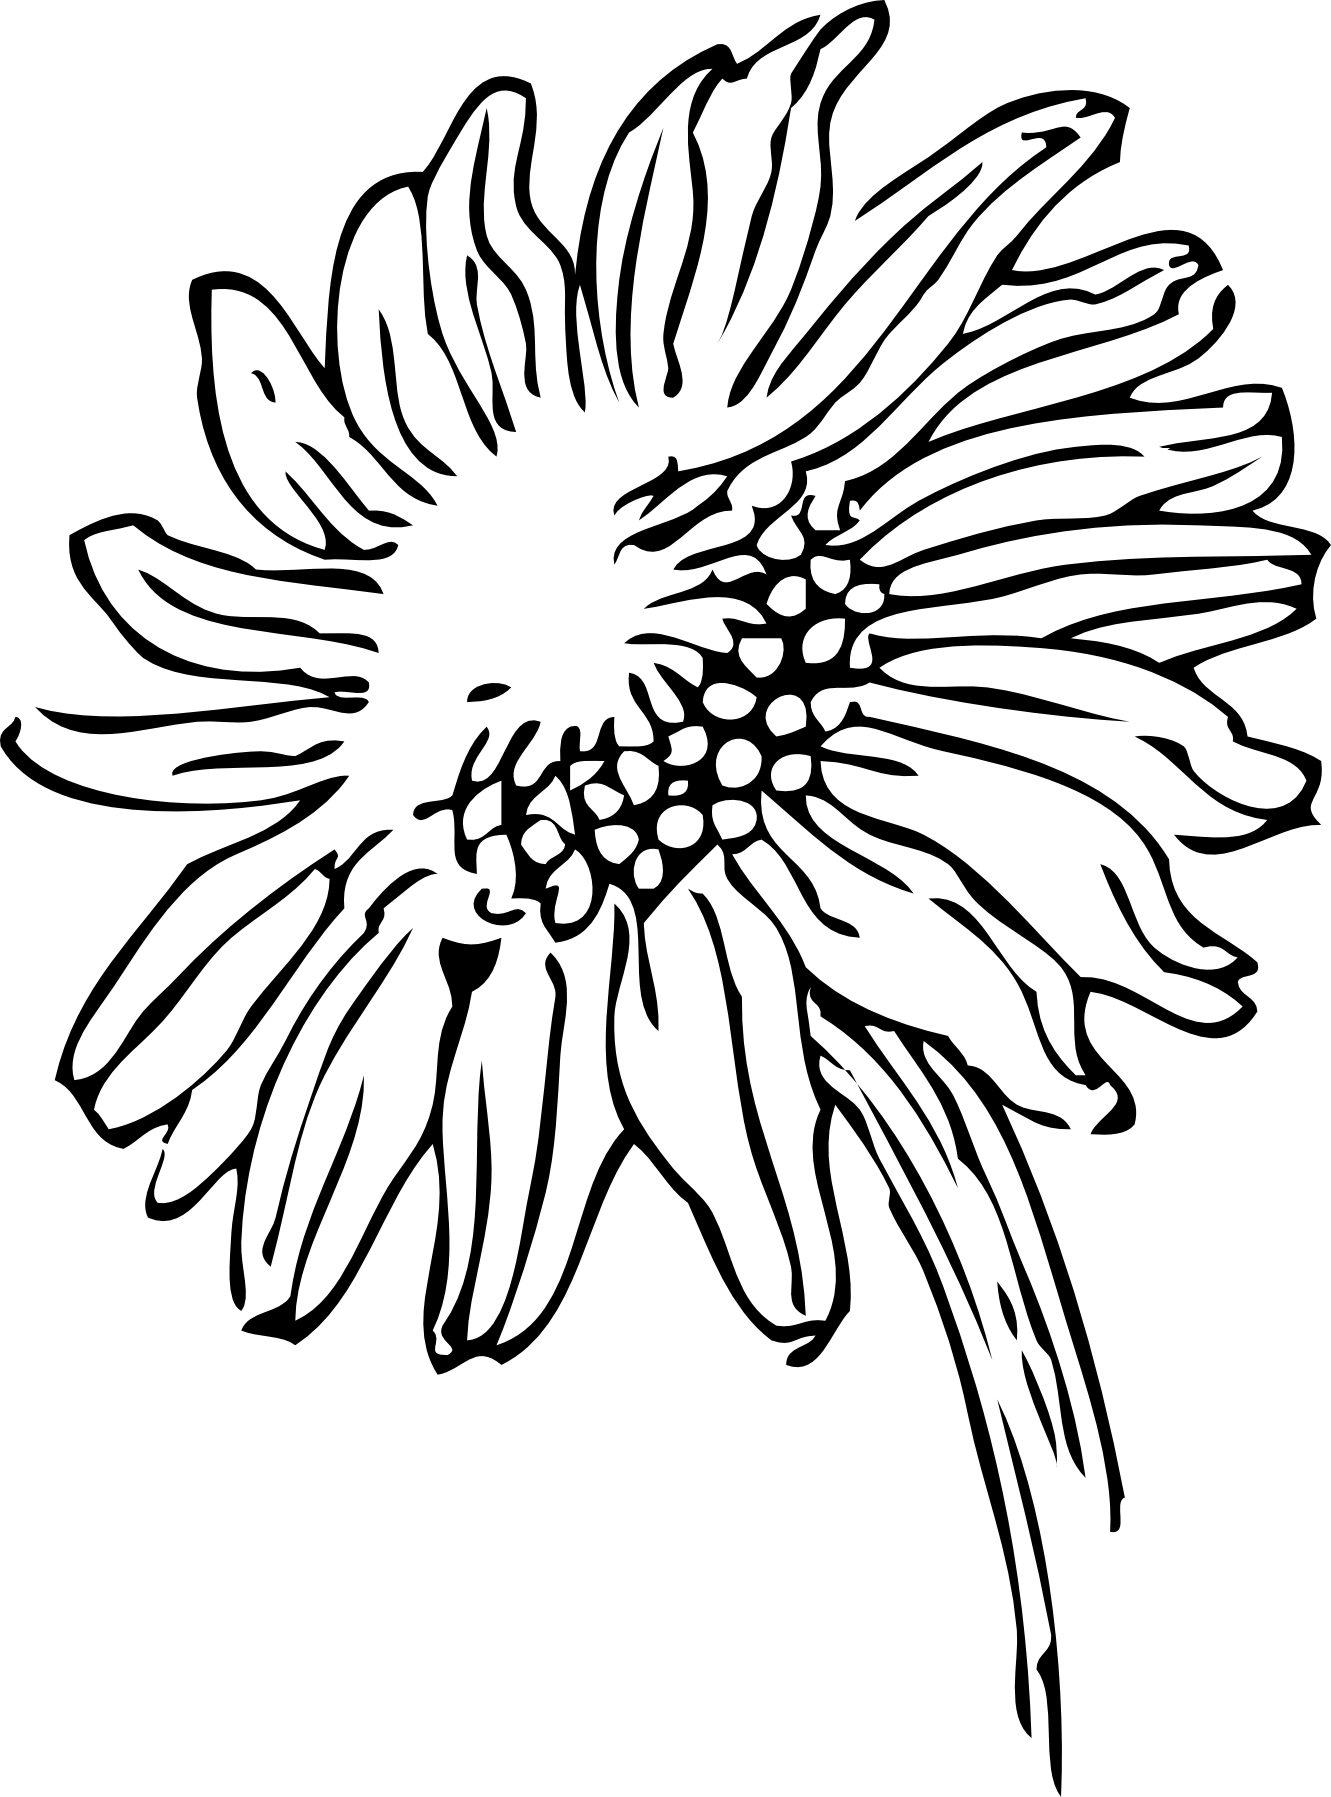 Sunflower clipart black and white. Panda free images sunflowersclipartblackandwhite